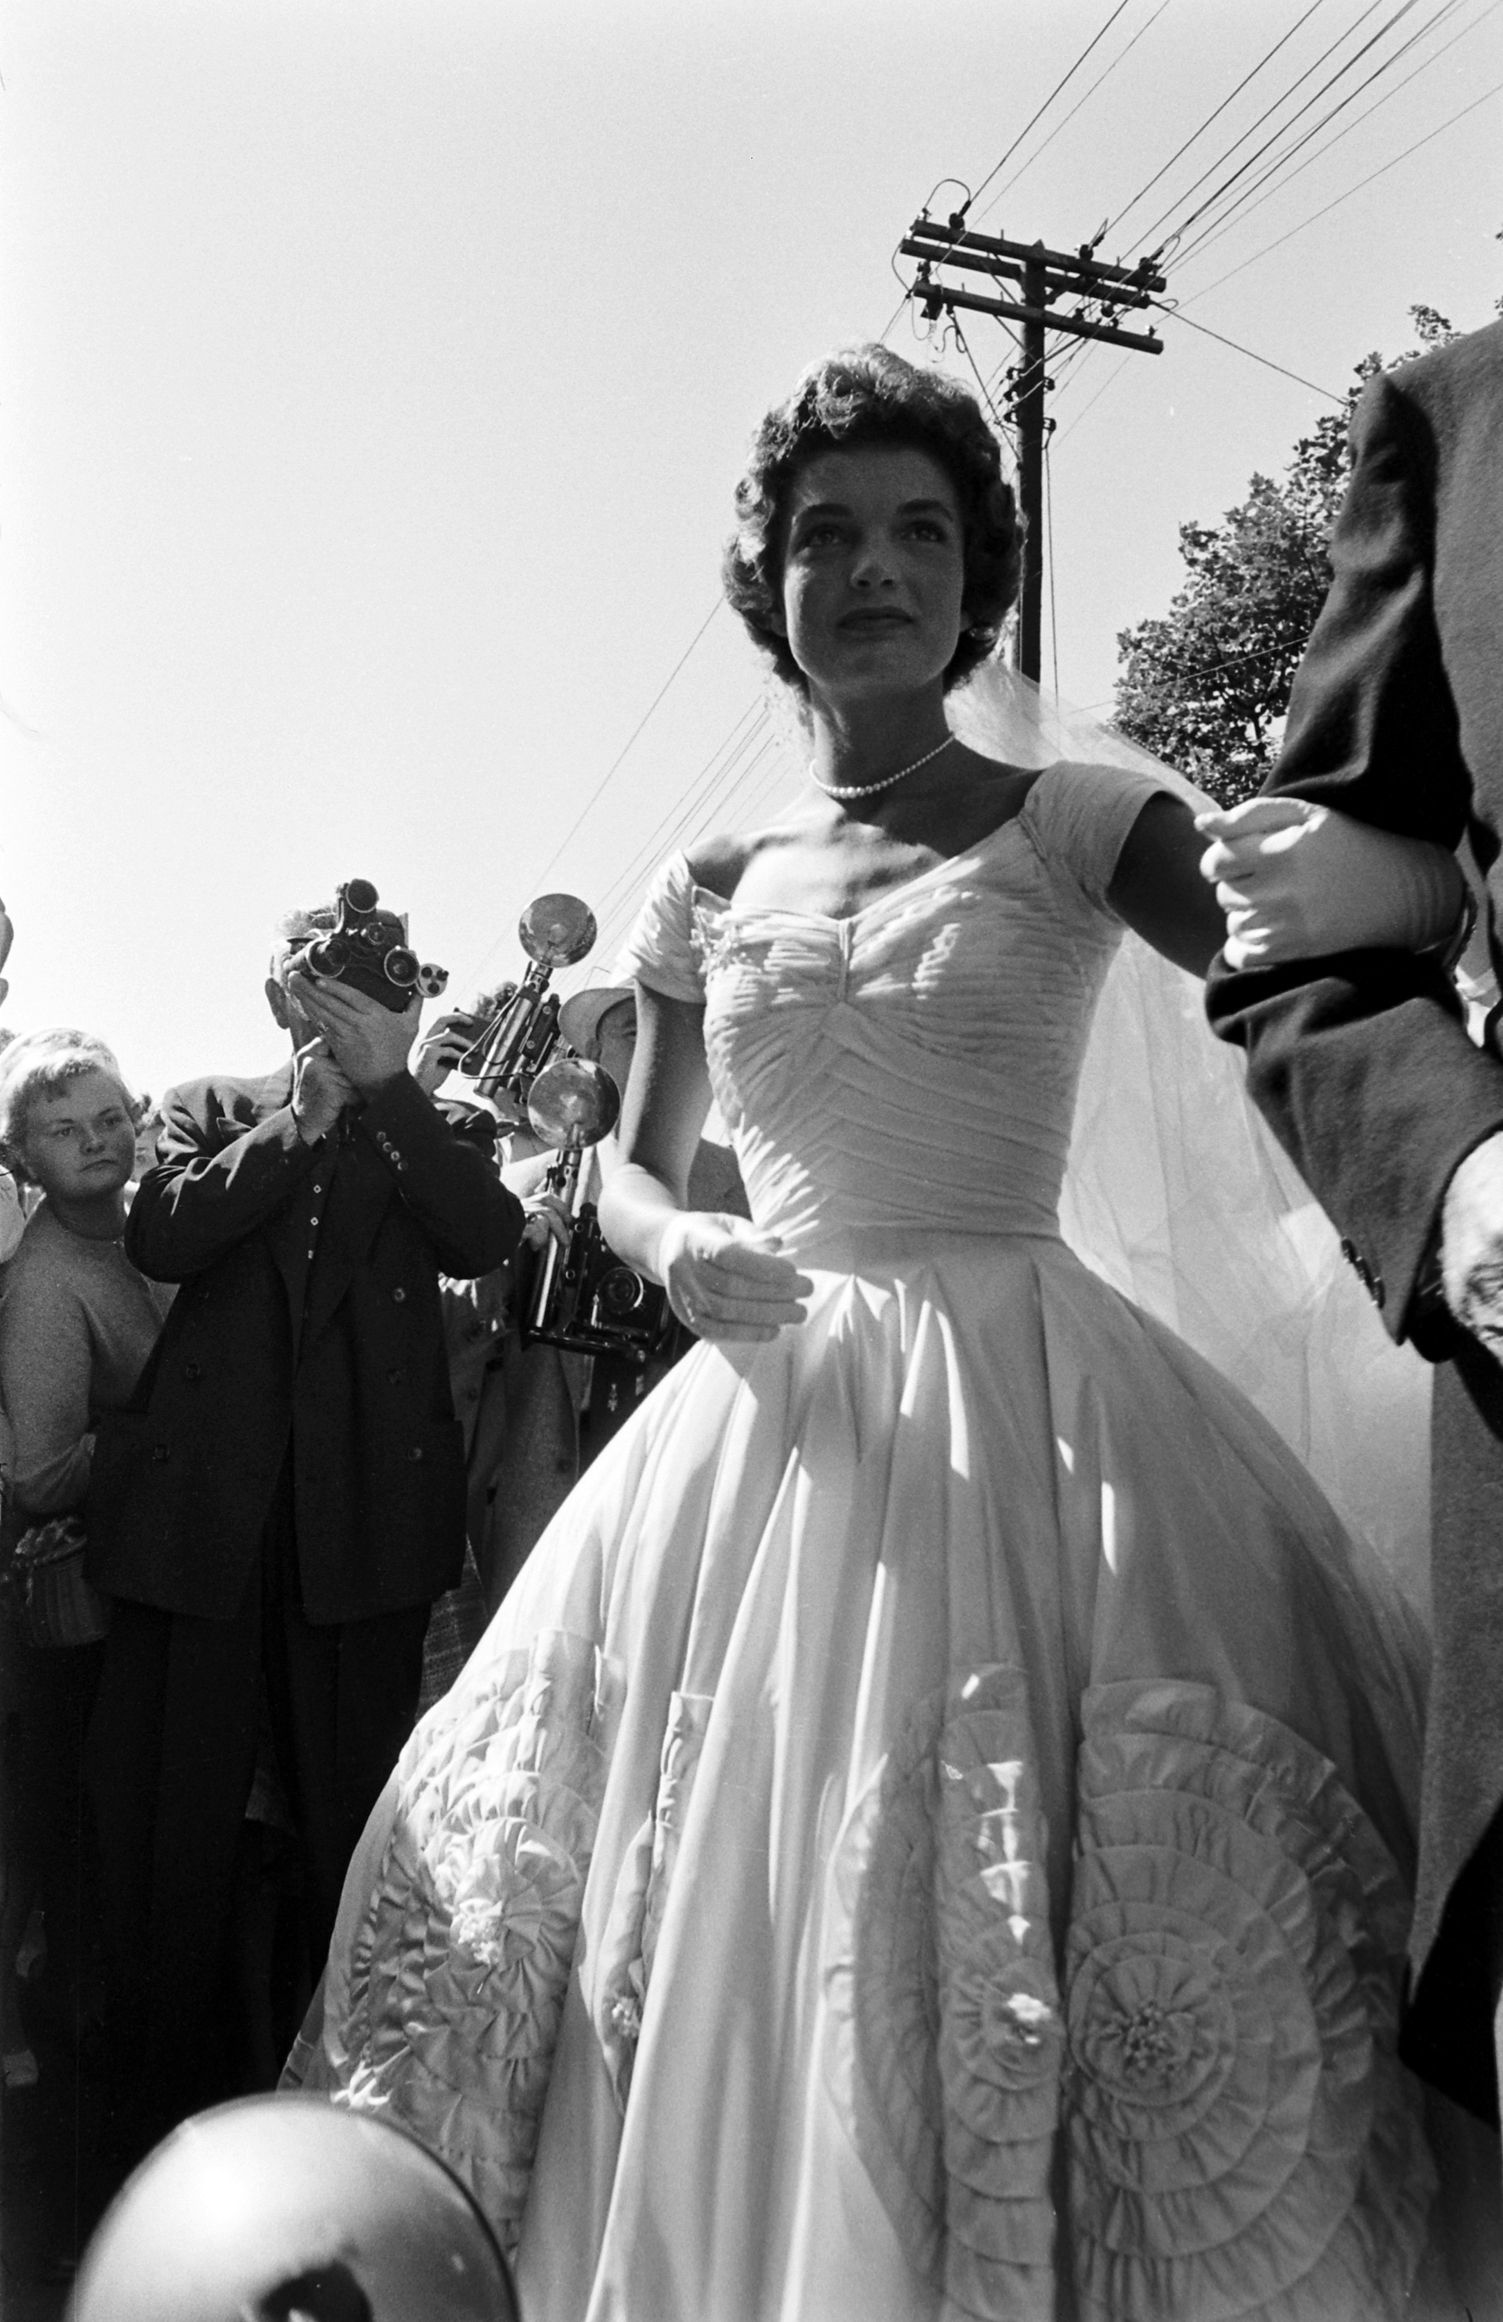 Jfk and jackie had more than guests at their wedding but even